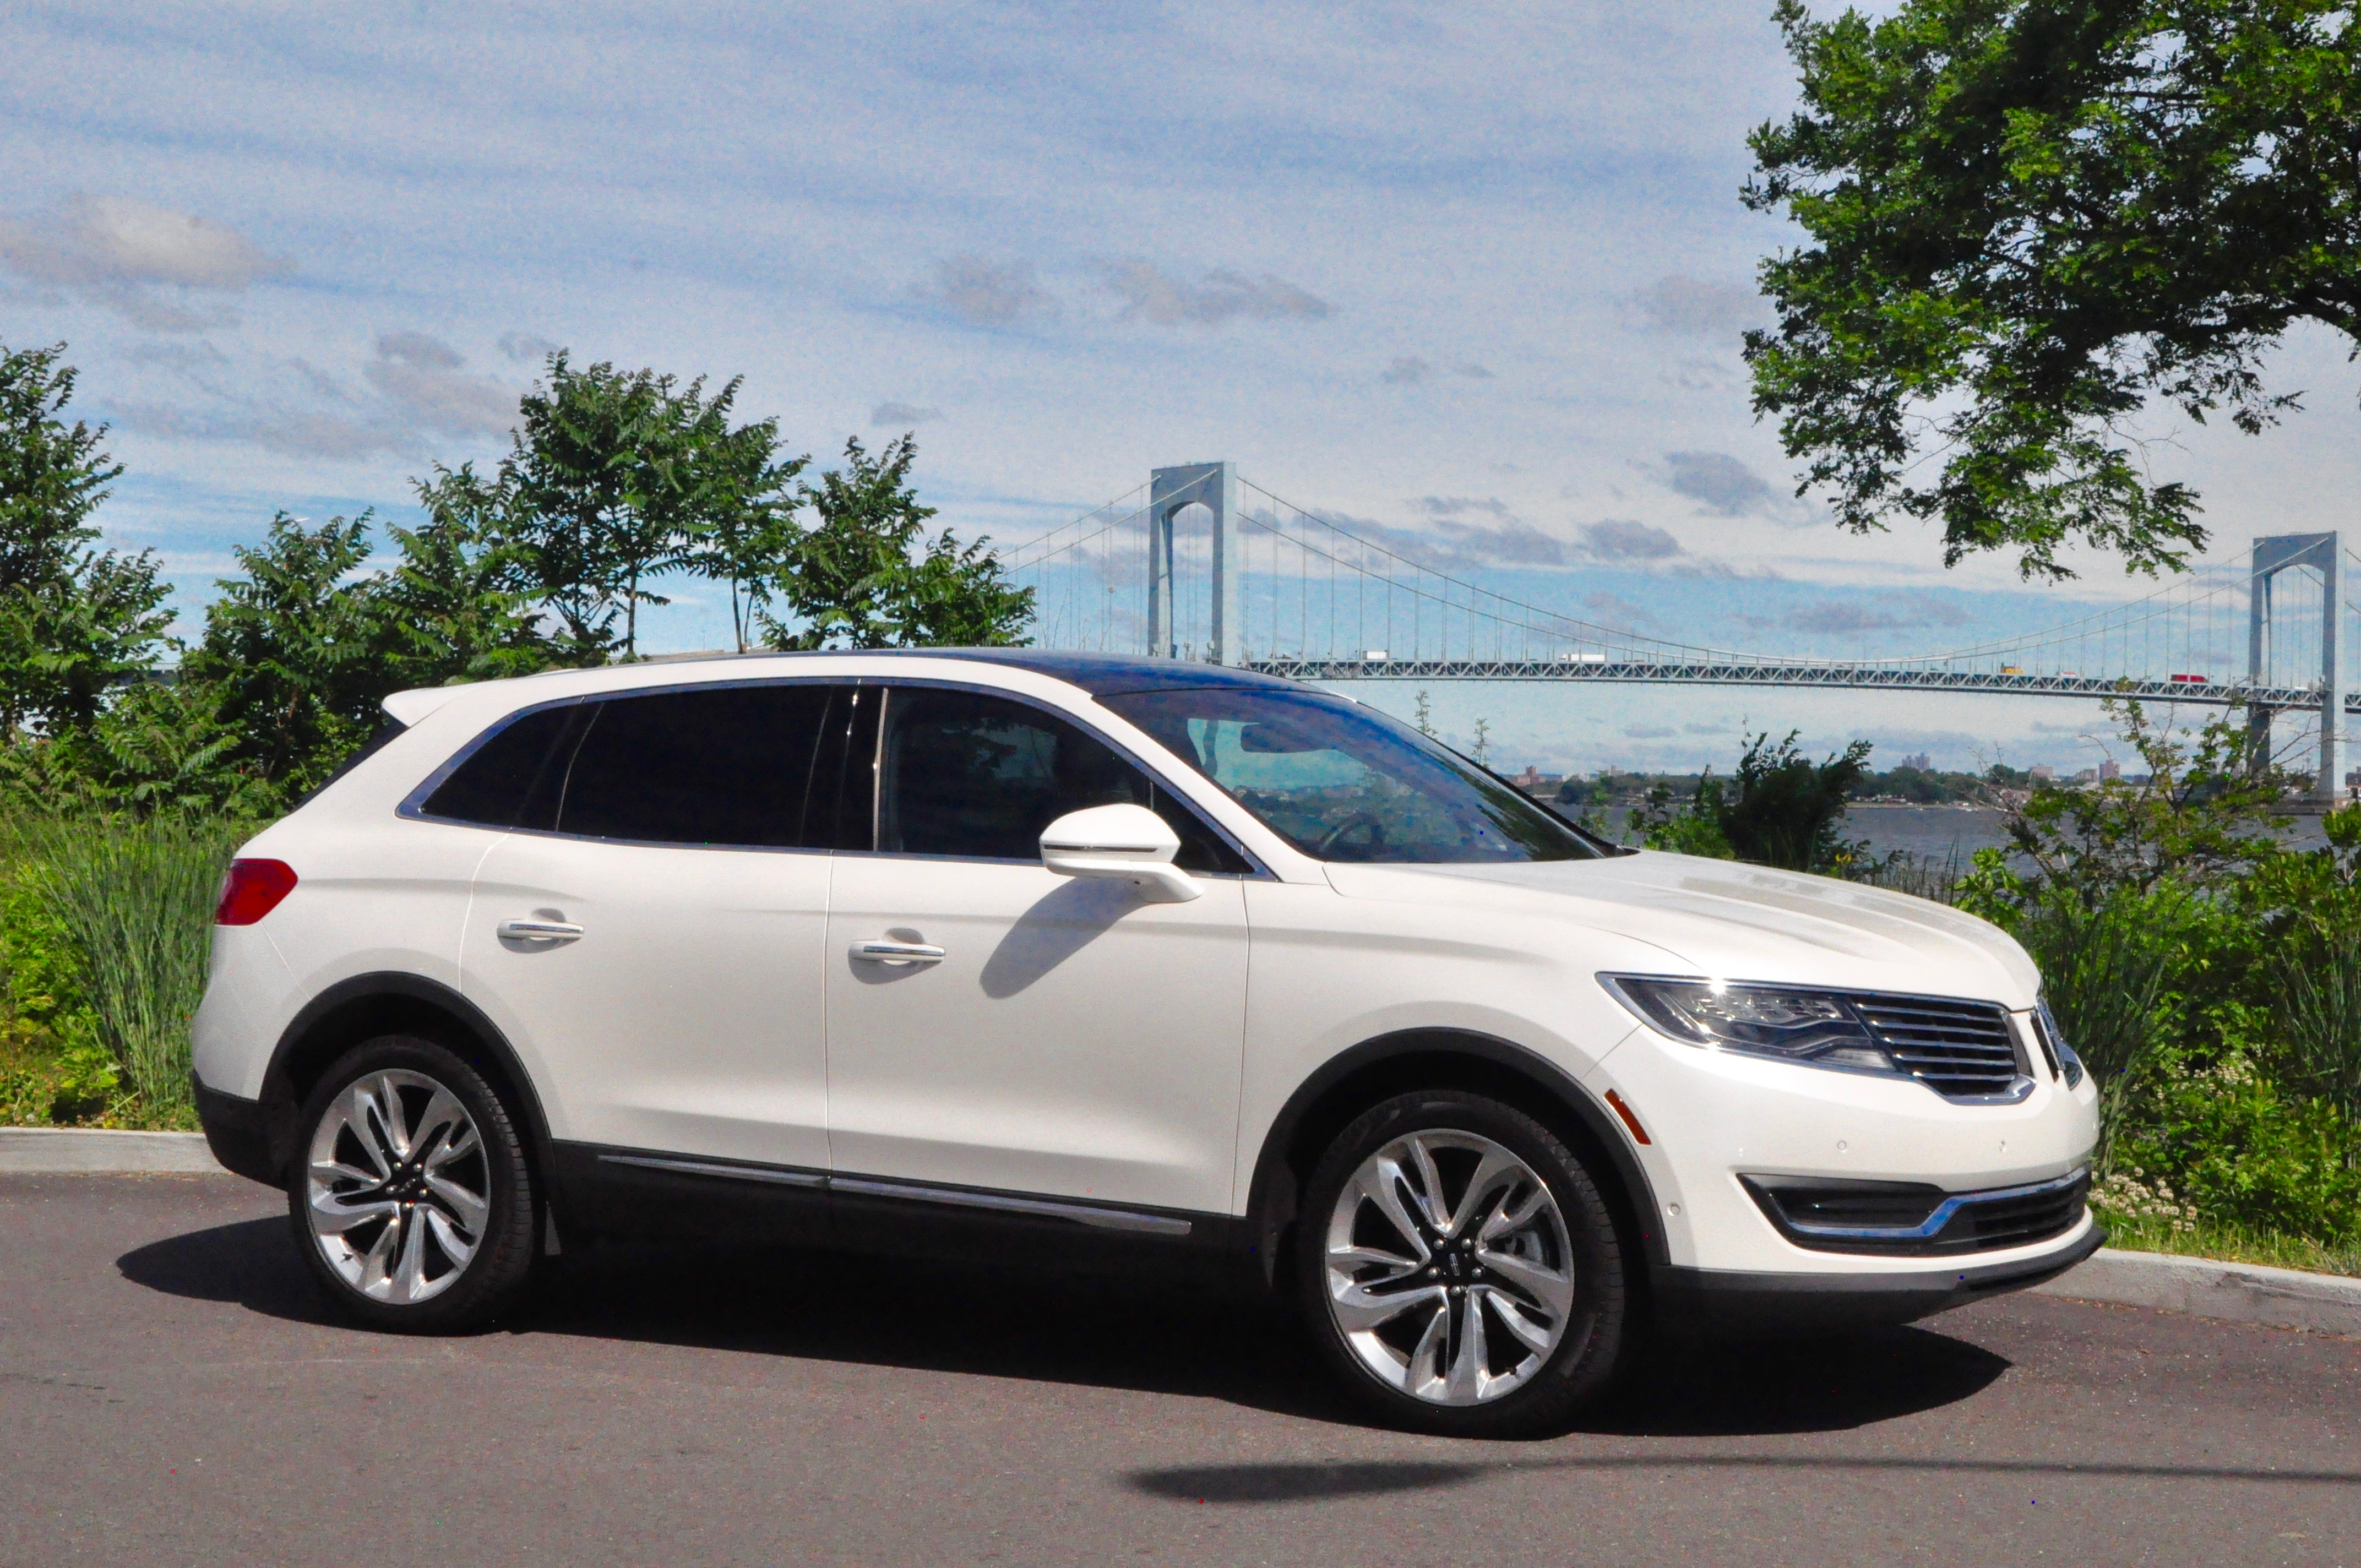 review and test drive 2016 lincoln mkx frequent business traveler. Black Bedroom Furniture Sets. Home Design Ideas